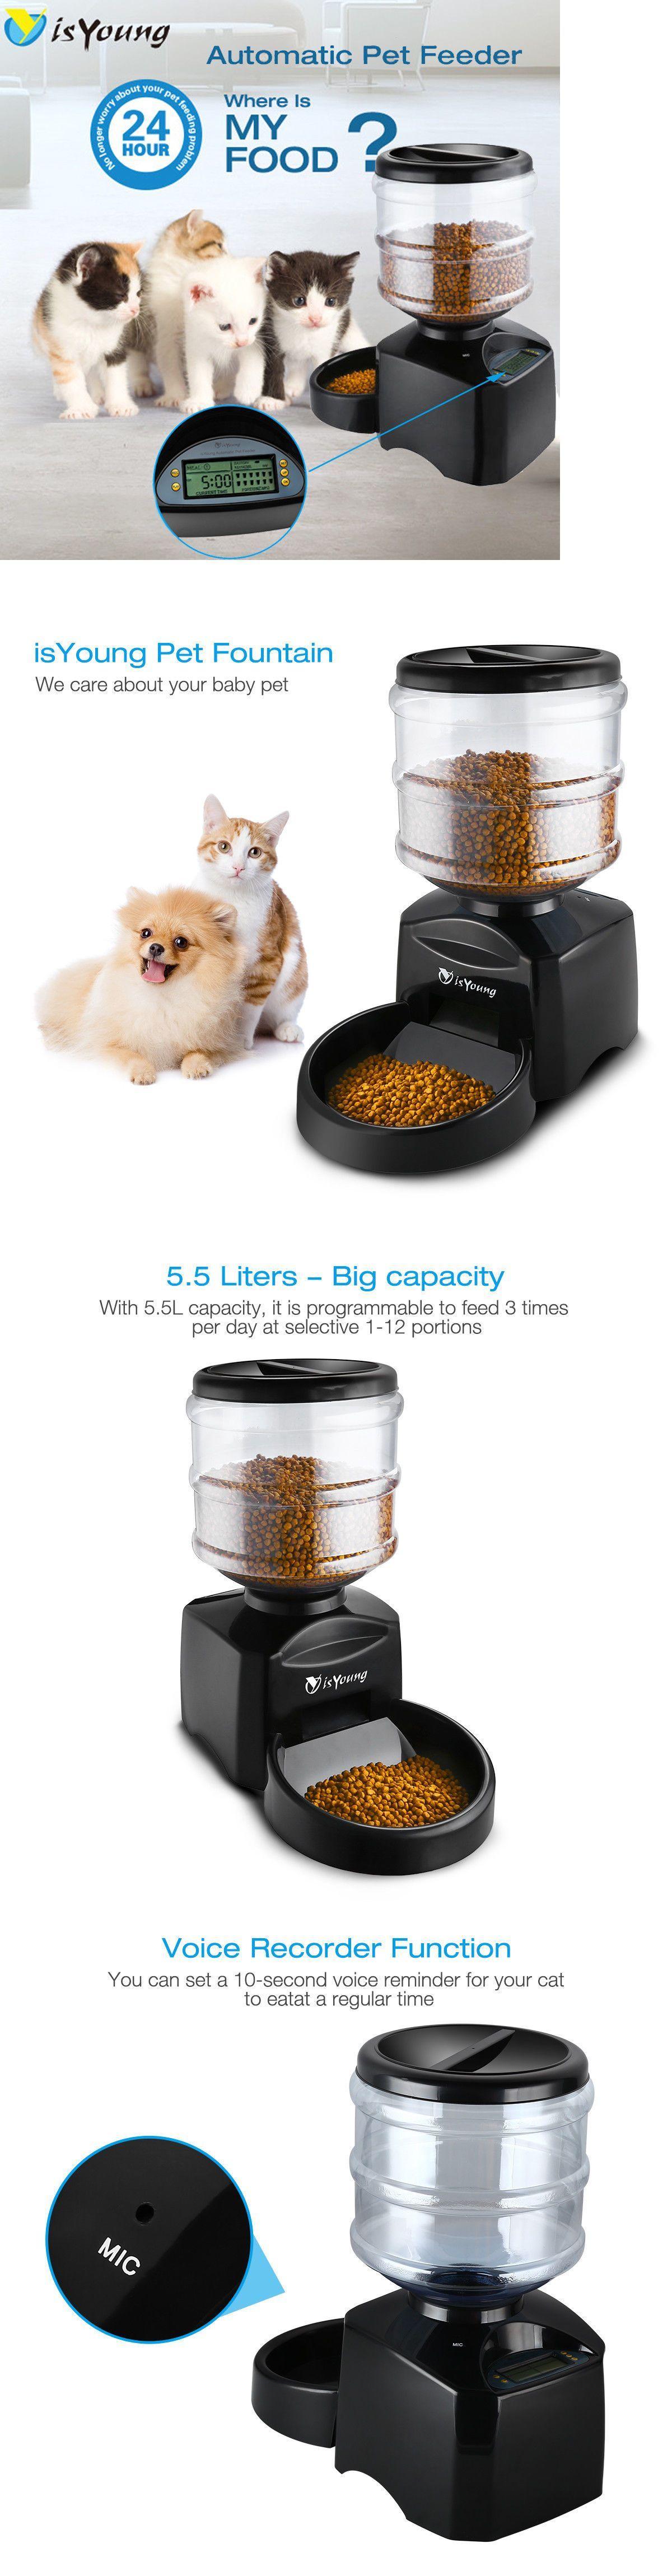 programmable feeder canlisohbethattiniz com canada automatic pet ordinary x